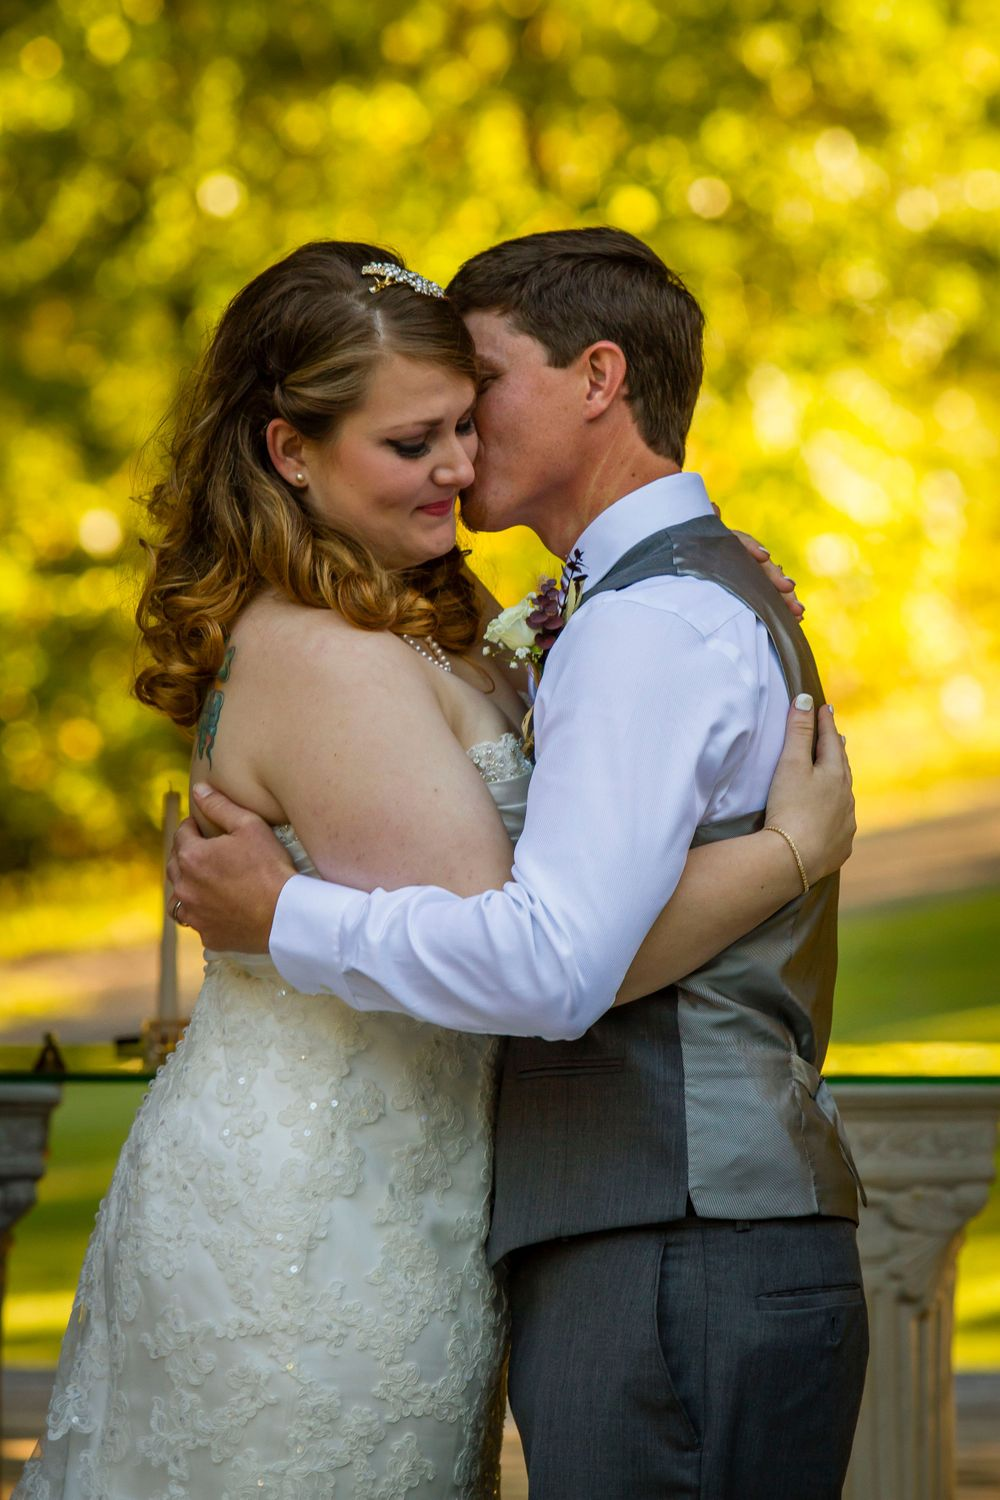 A newlywed couple hug at their outdoor wedding